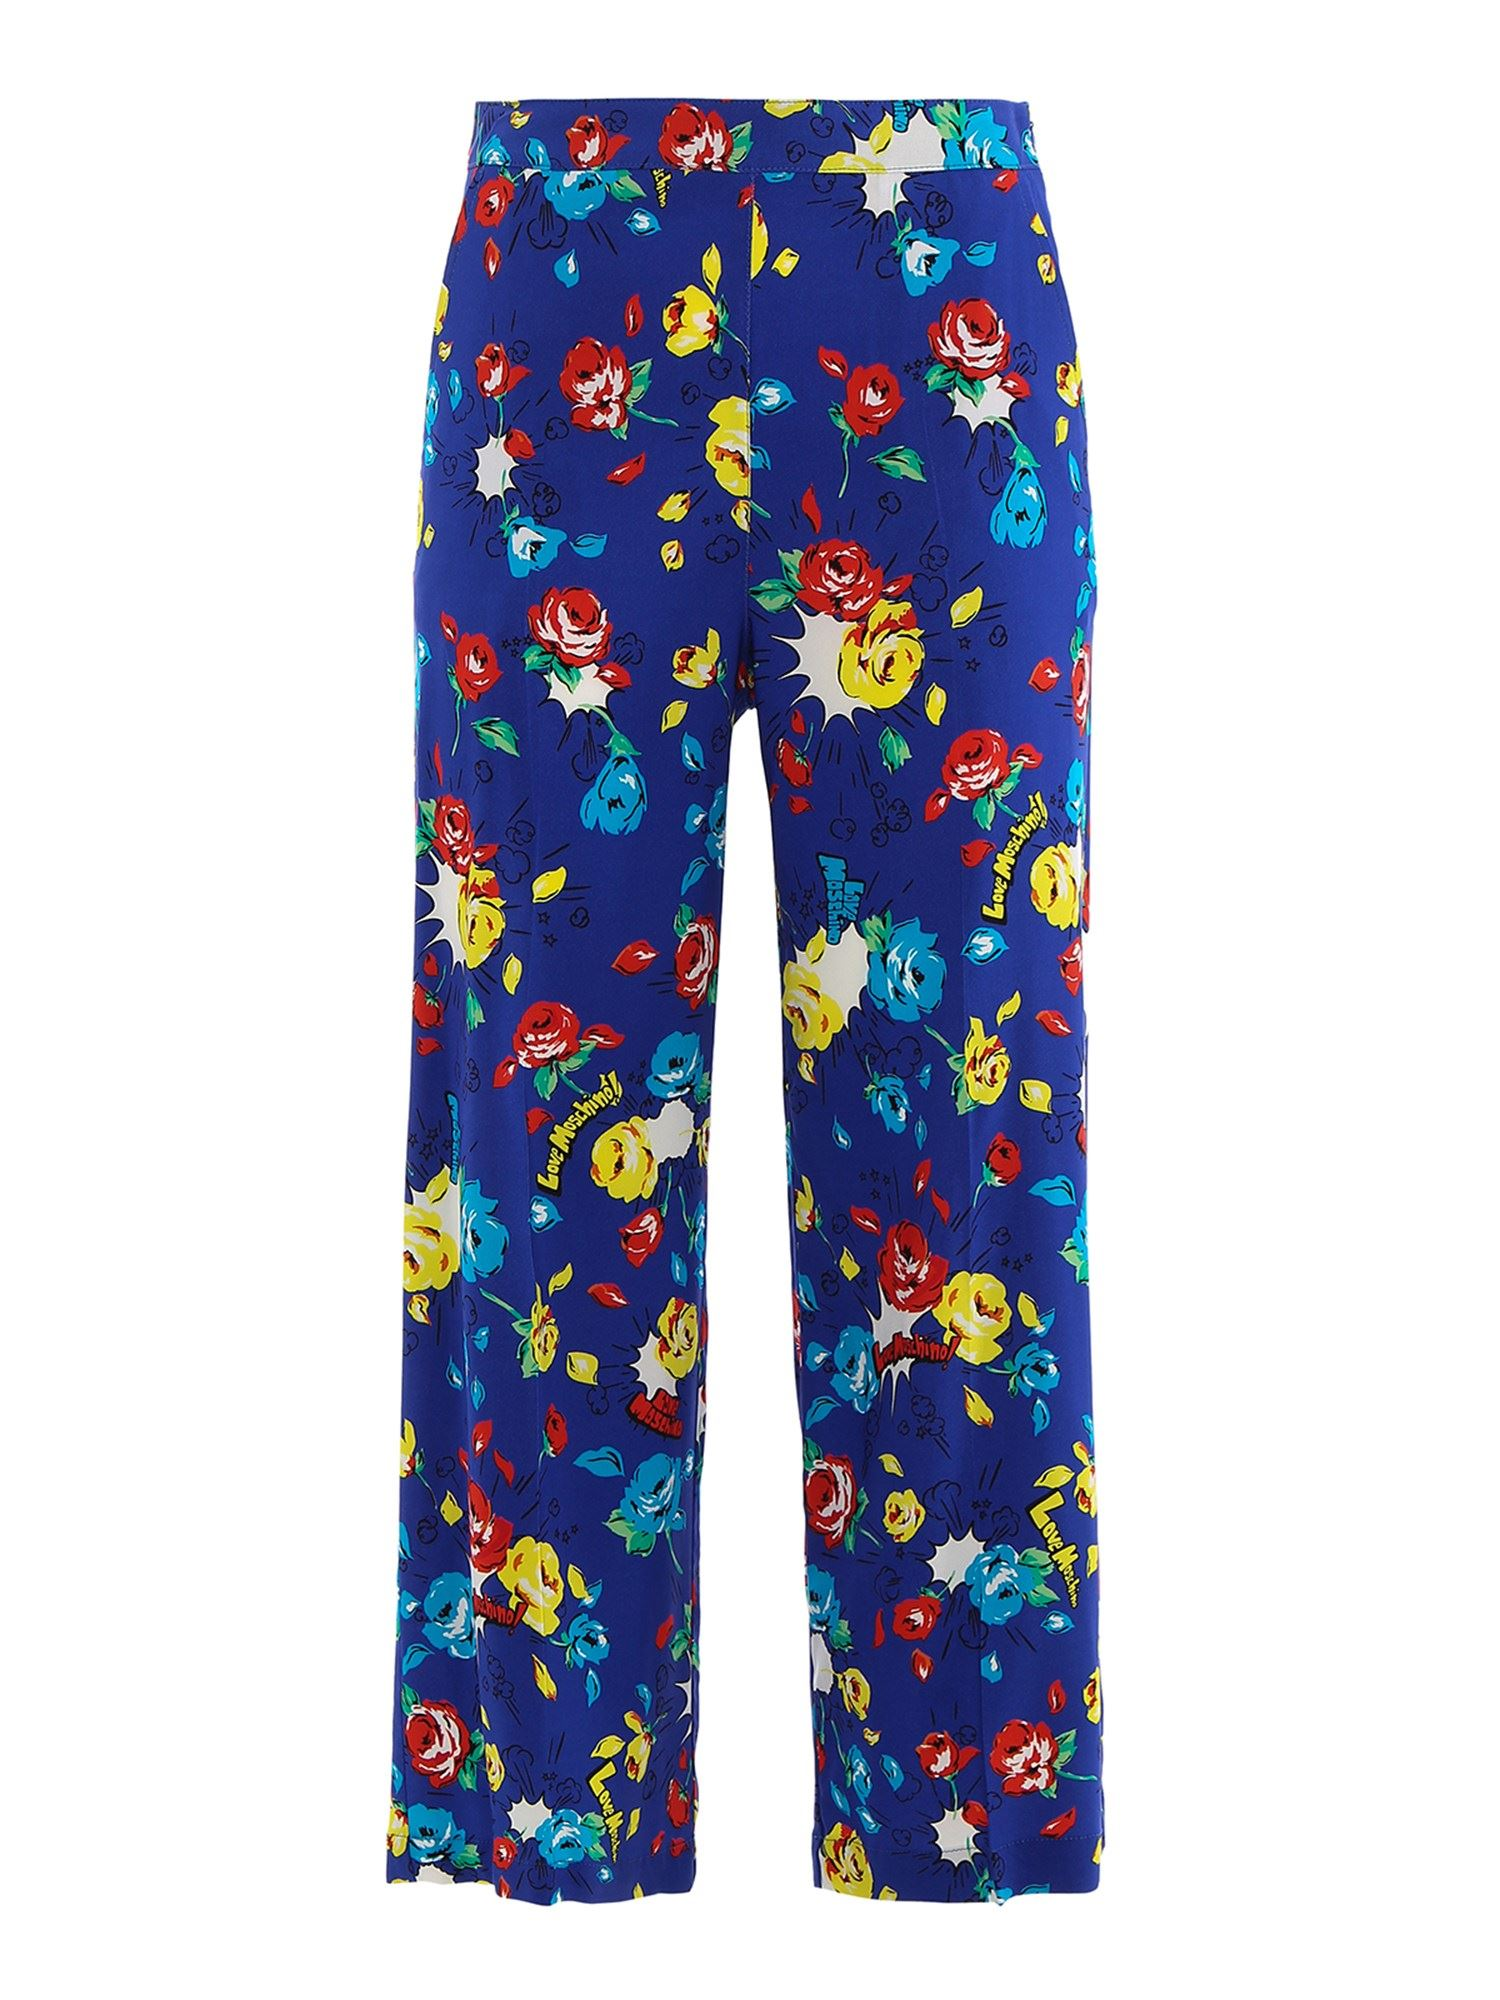 Moschino POP FLOWERS PANTS IN BLUE